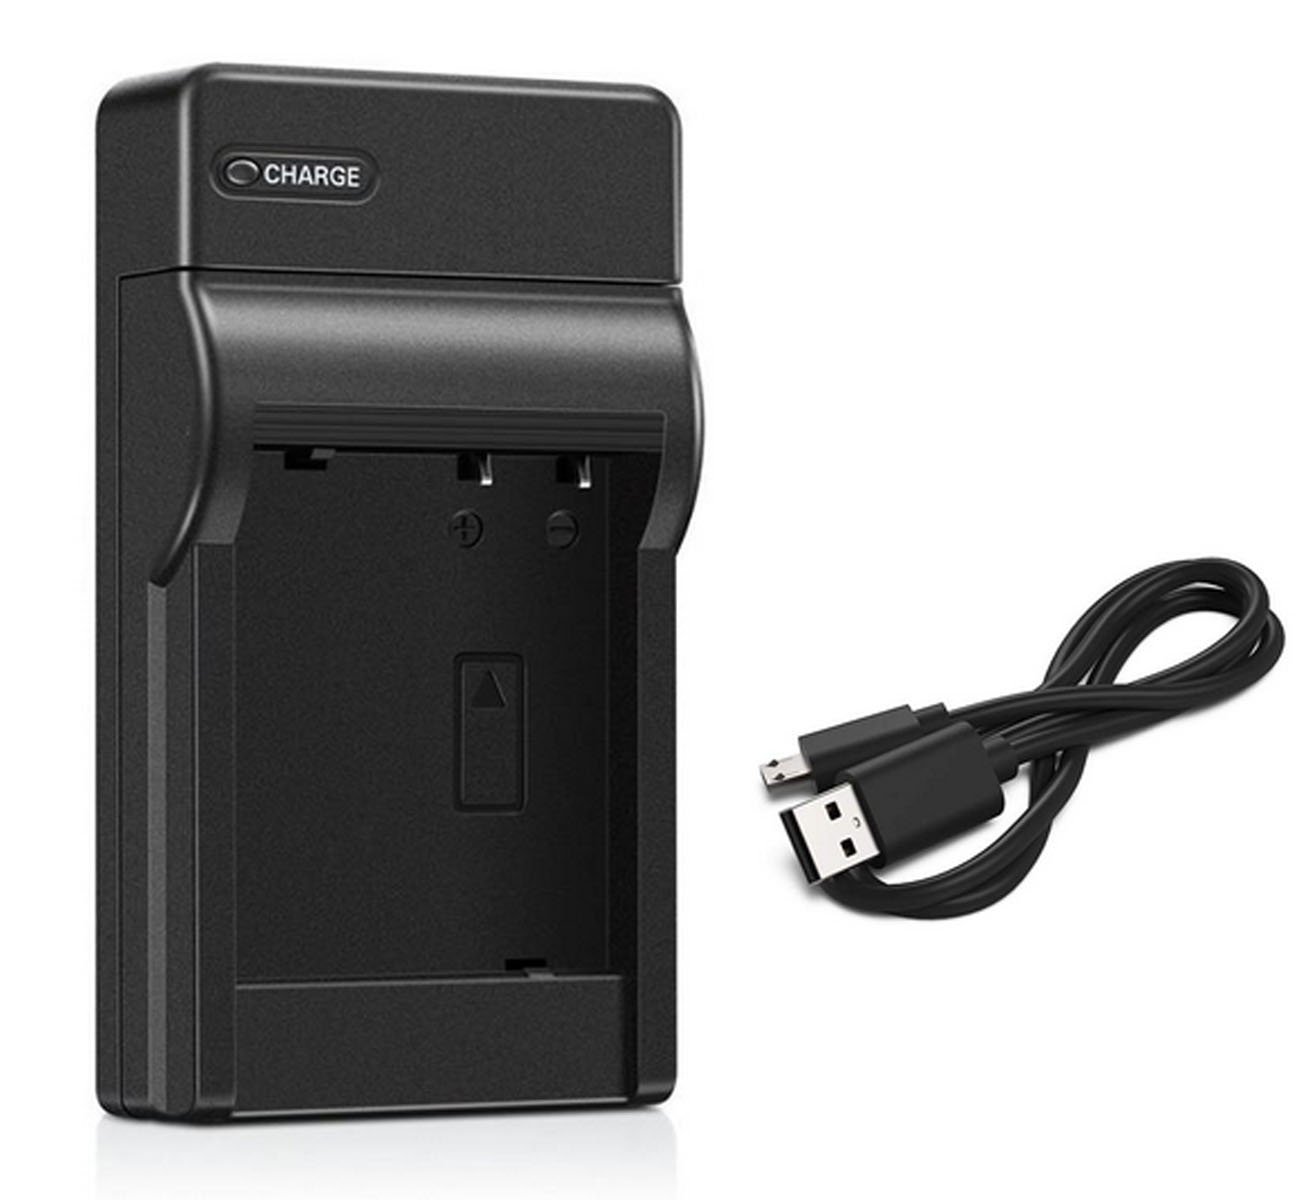 <font><b>Battery</b></font> Charger for <font><b>Canon</b></font> PowerShot SX200, SX200IS, SX210 IS, SX210IS, SX230 HS, <font><b>SX230HS</b></font>, IXUS 90 IS, IXUS90IS Digital Camera image